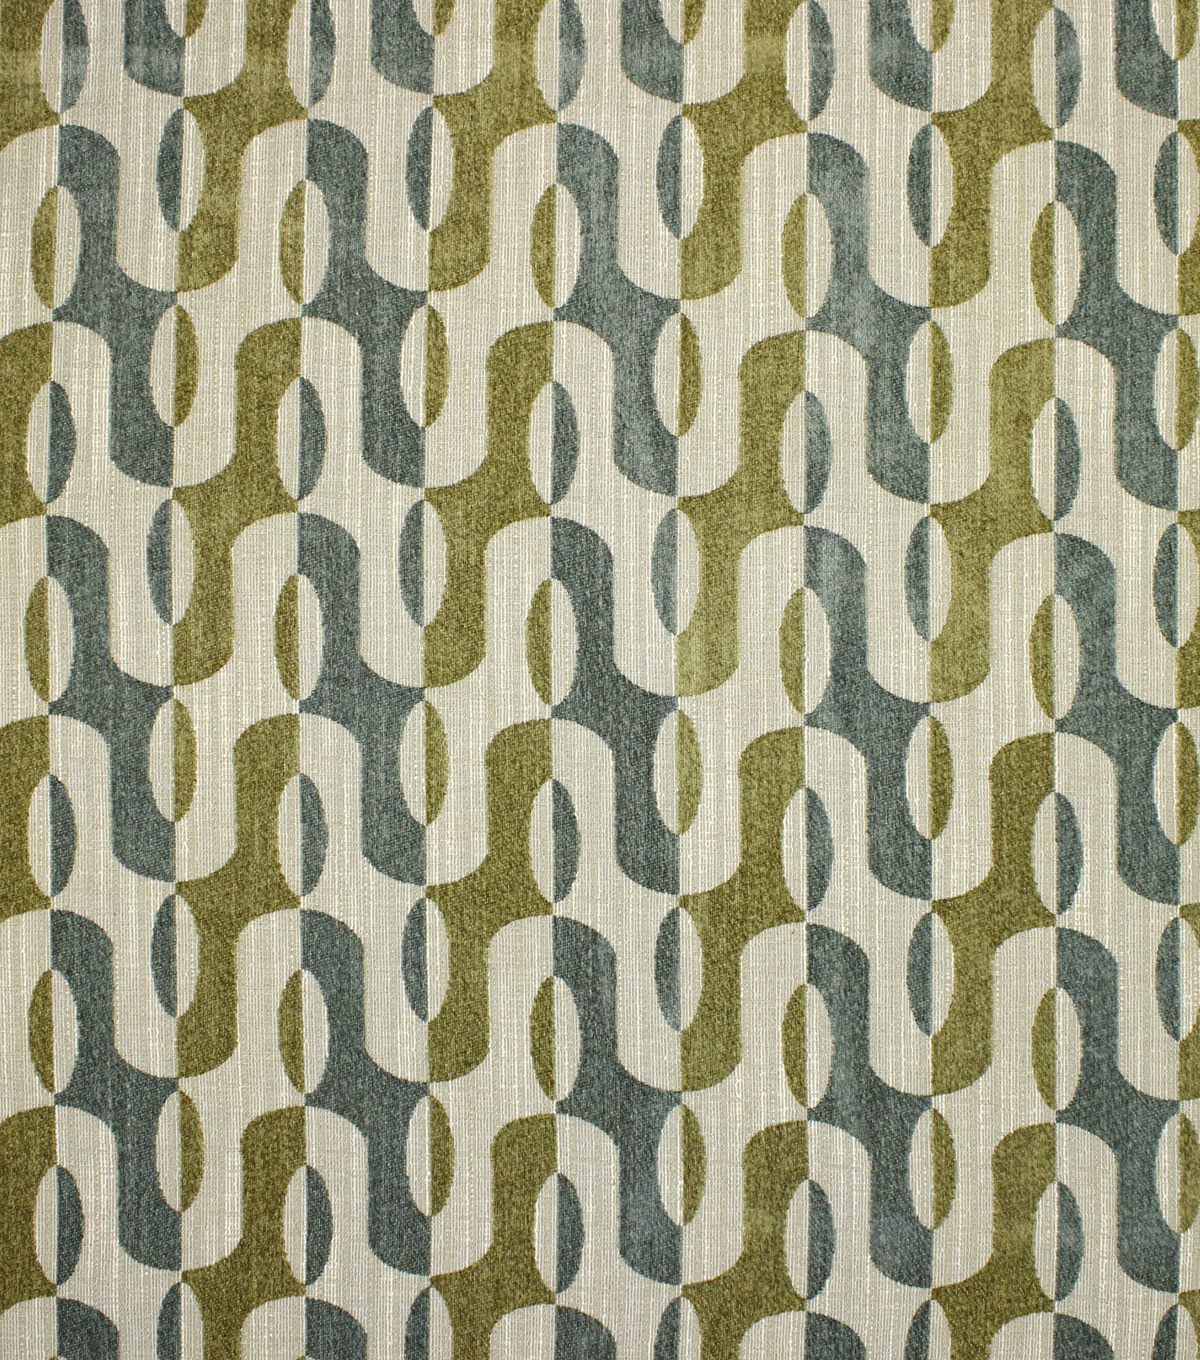 Home Decor 8\u0022x8\u0022 Fabric Swatch-Upholstery Fabric Barrow M8717-5671 Lagoon